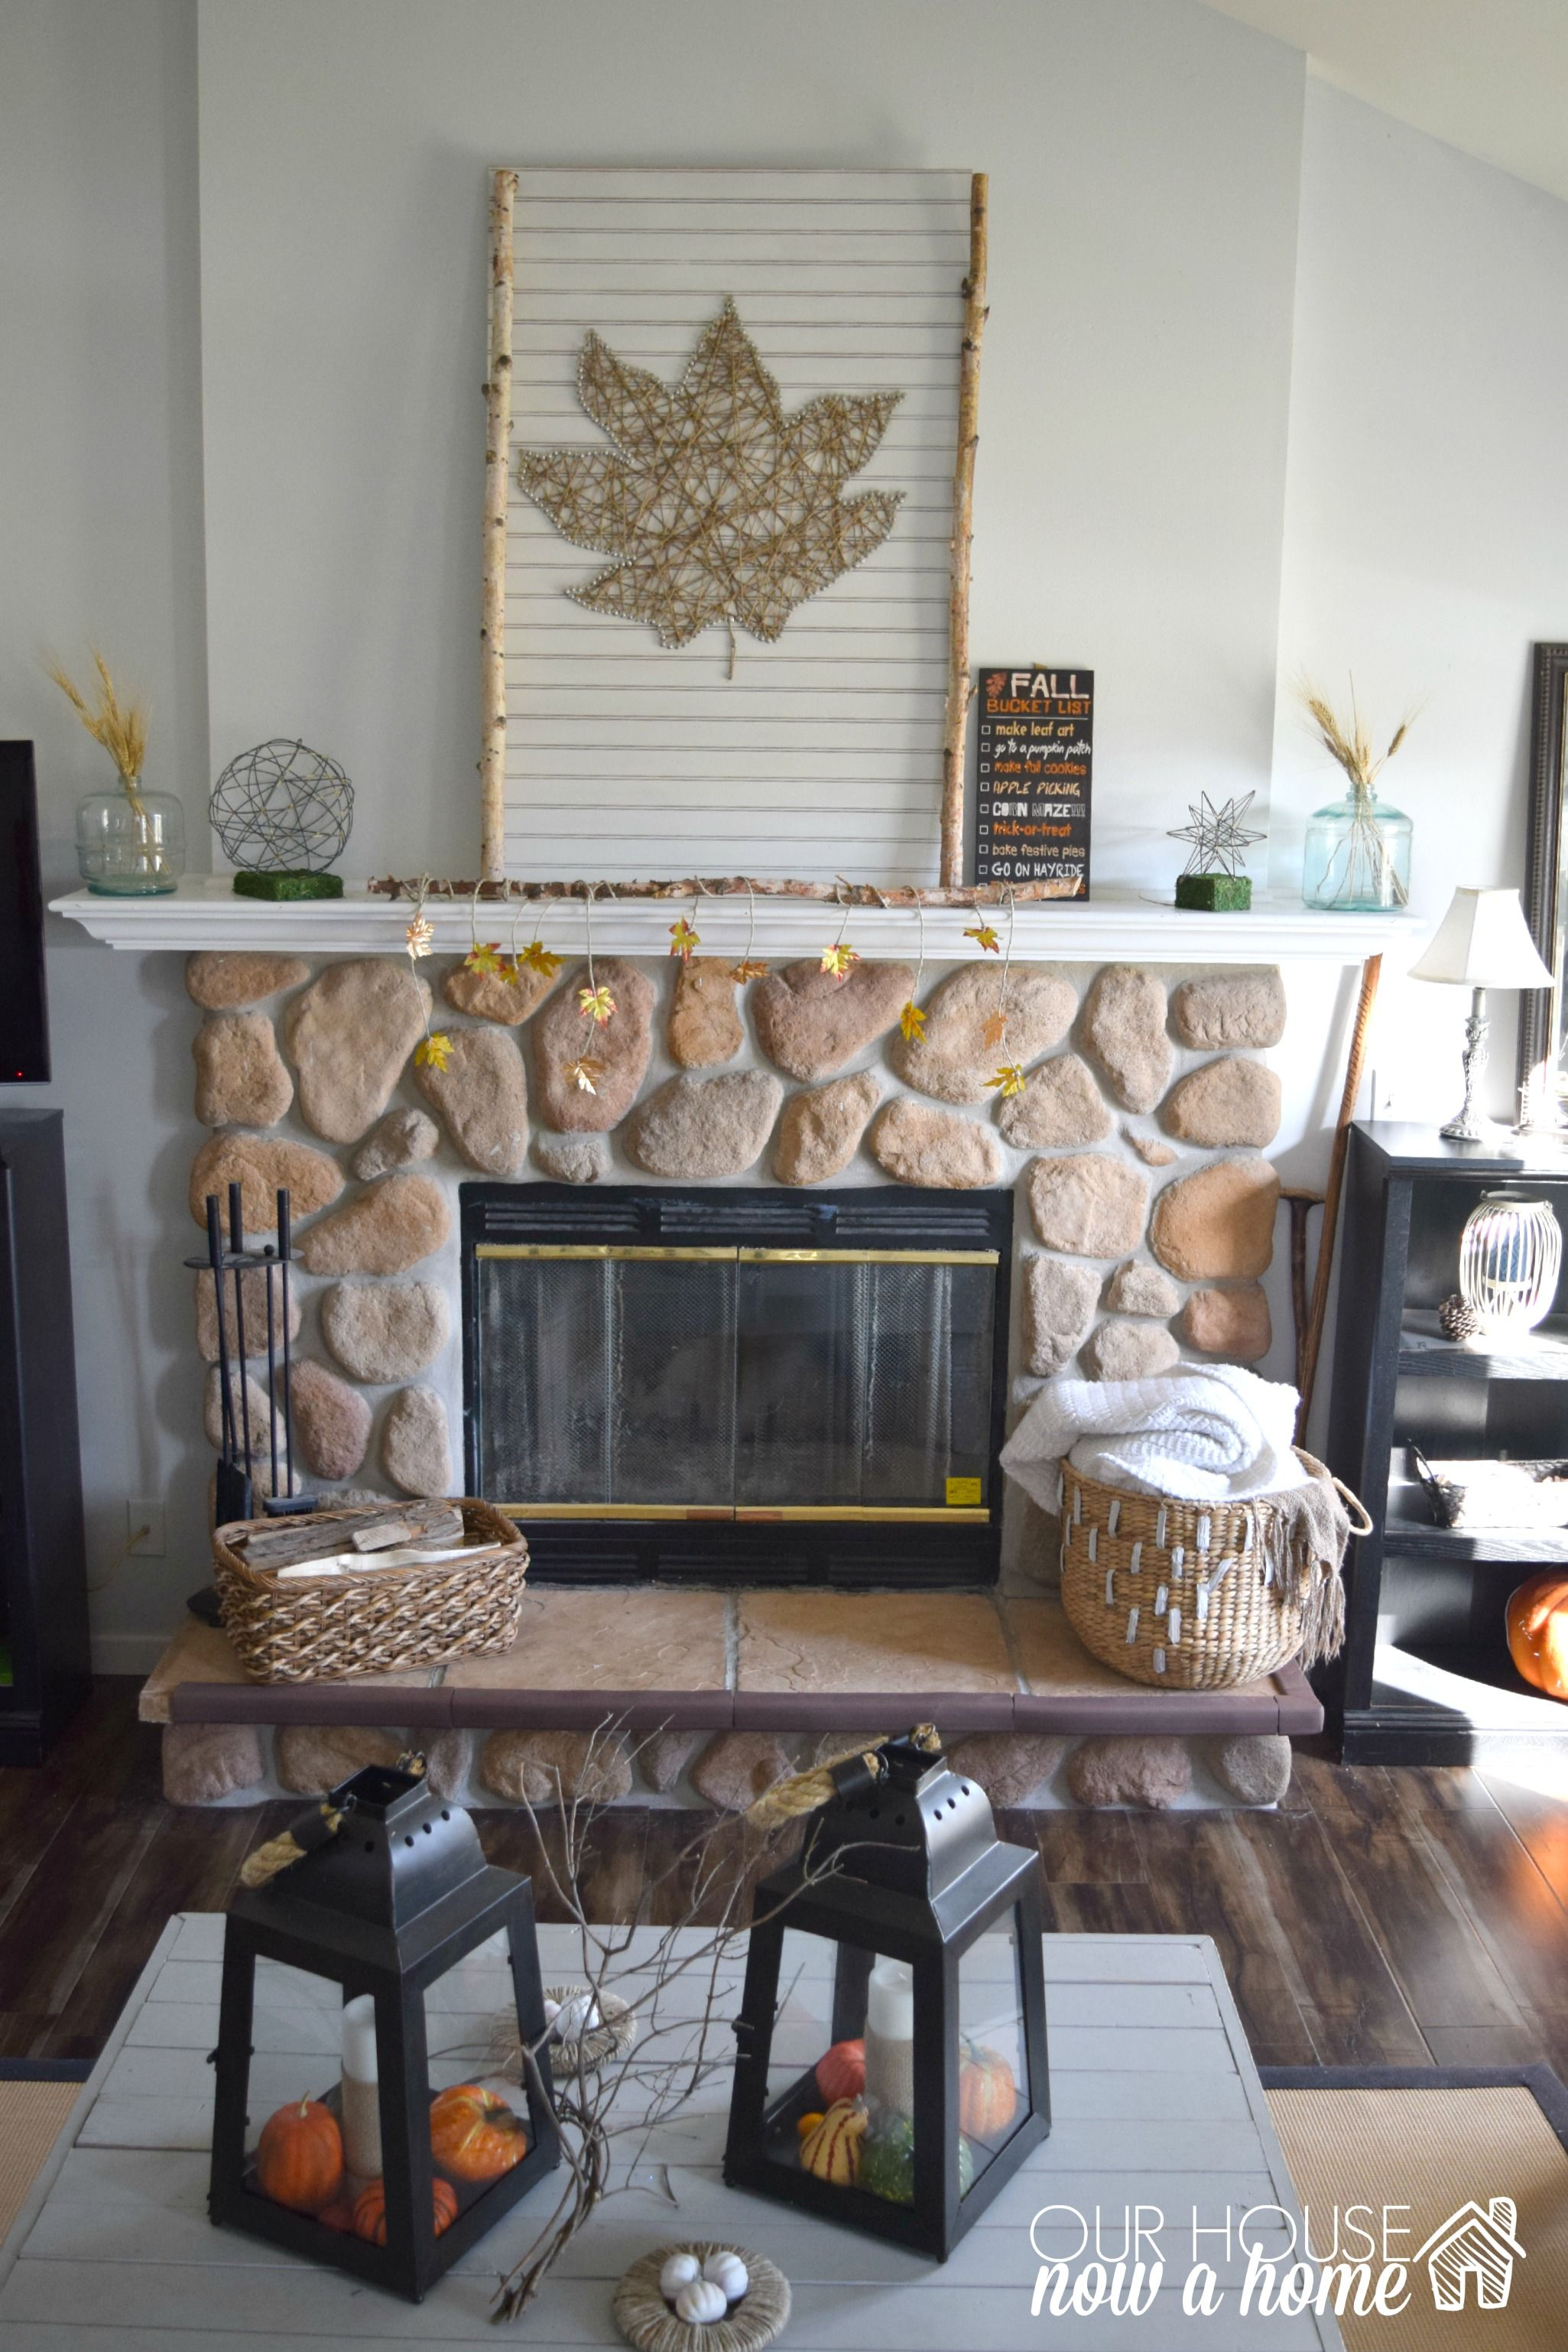 Turning A Home Into A Neutral And Simple Fall Look. Perfect For The  Craziness Of The Holidays. Keeping Things Clean And Calm With The Help Of  Gordmans And ...